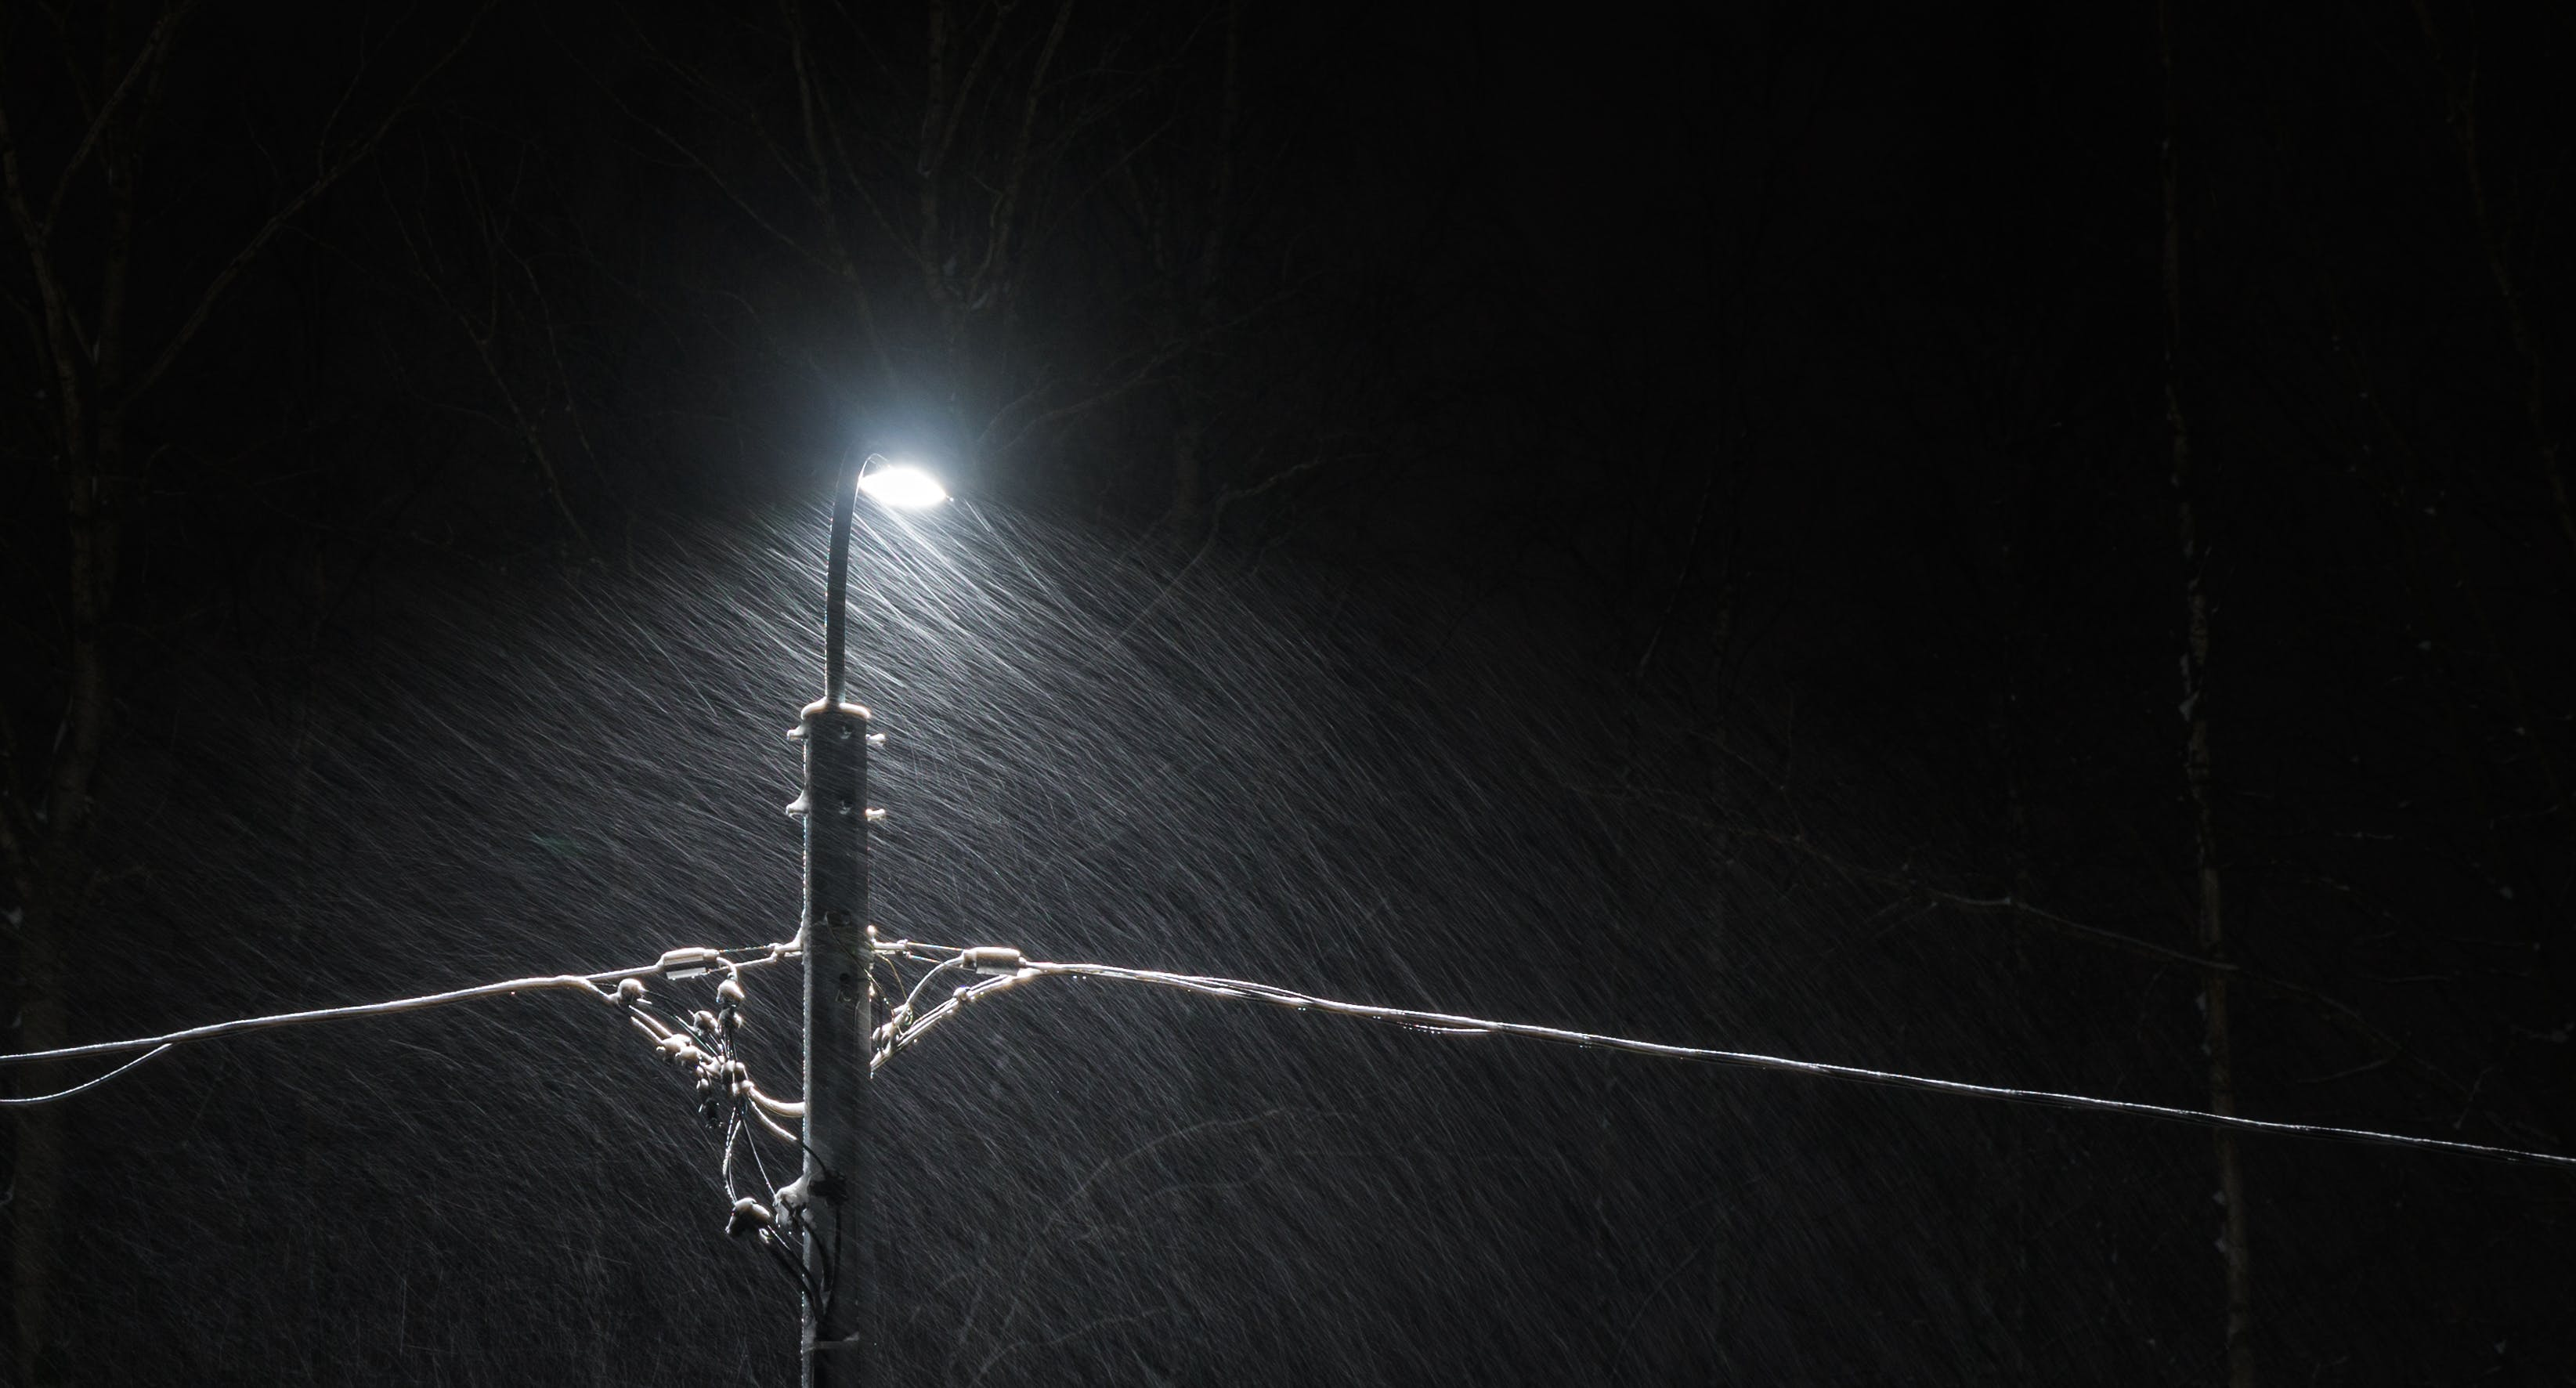 Black Electric Lamp Post With Lighted Lamp during Nighttime